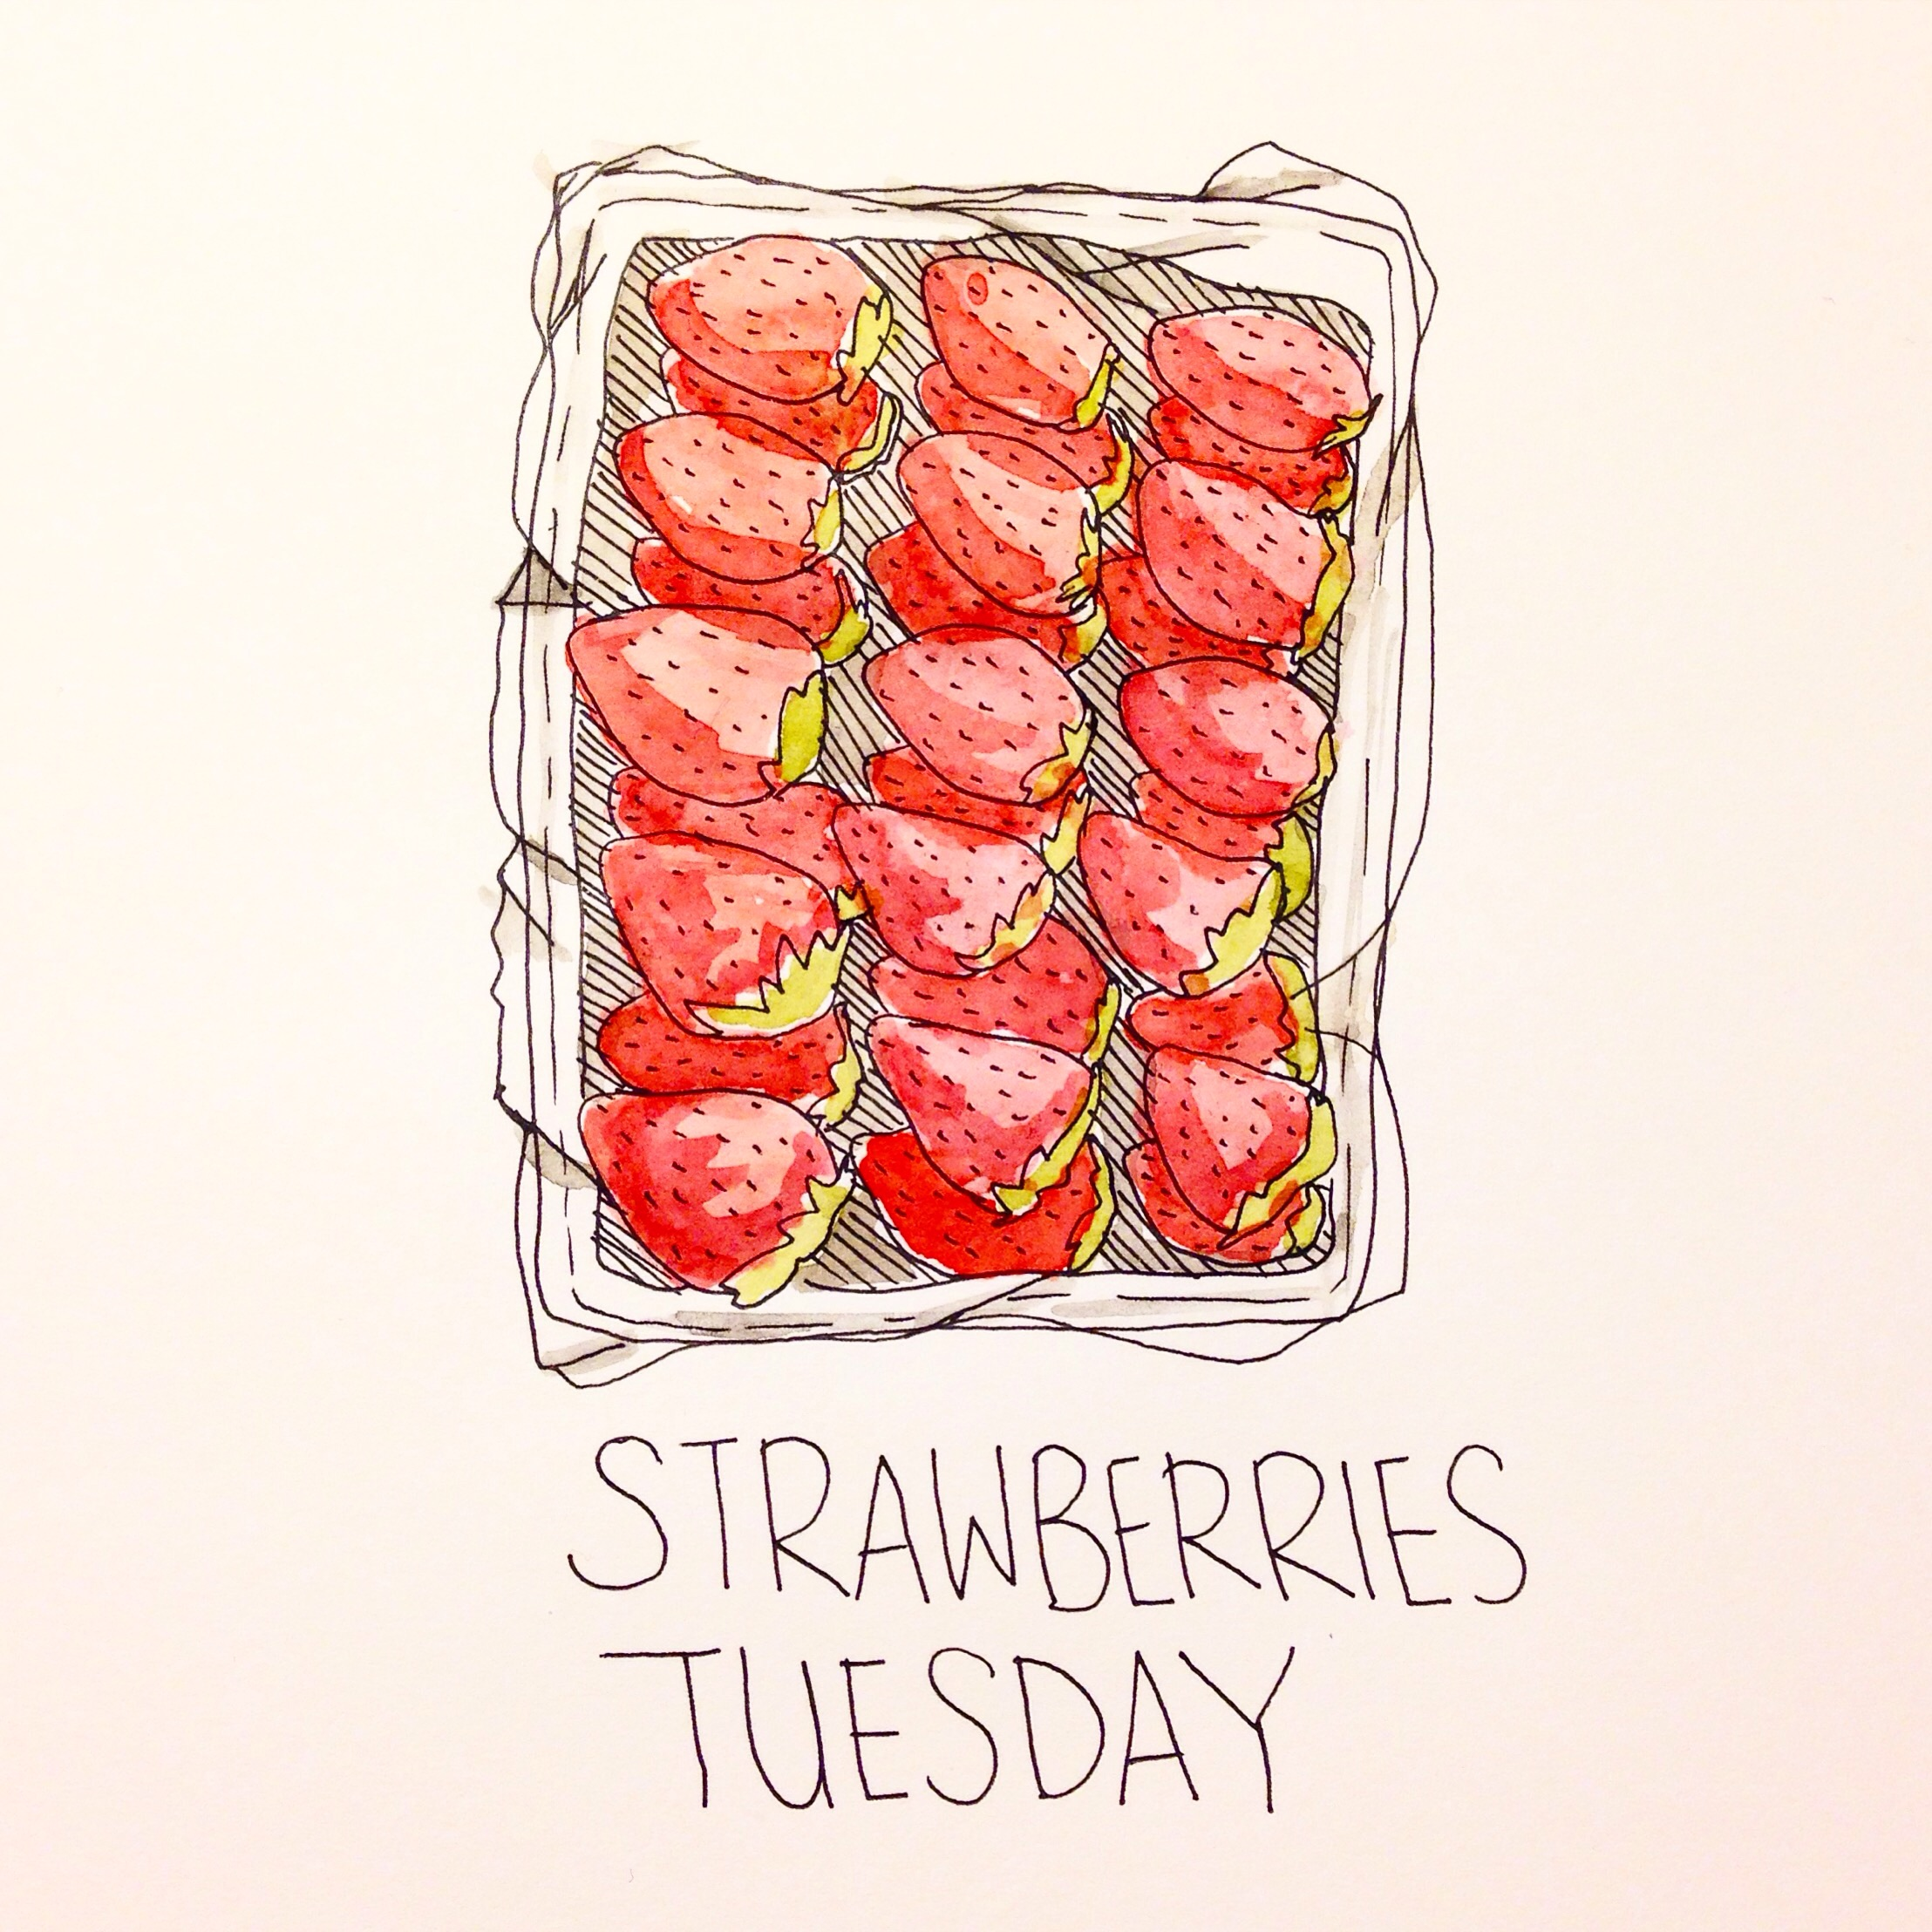 Strawberries from Saga Prefecture Japan, An Illustration